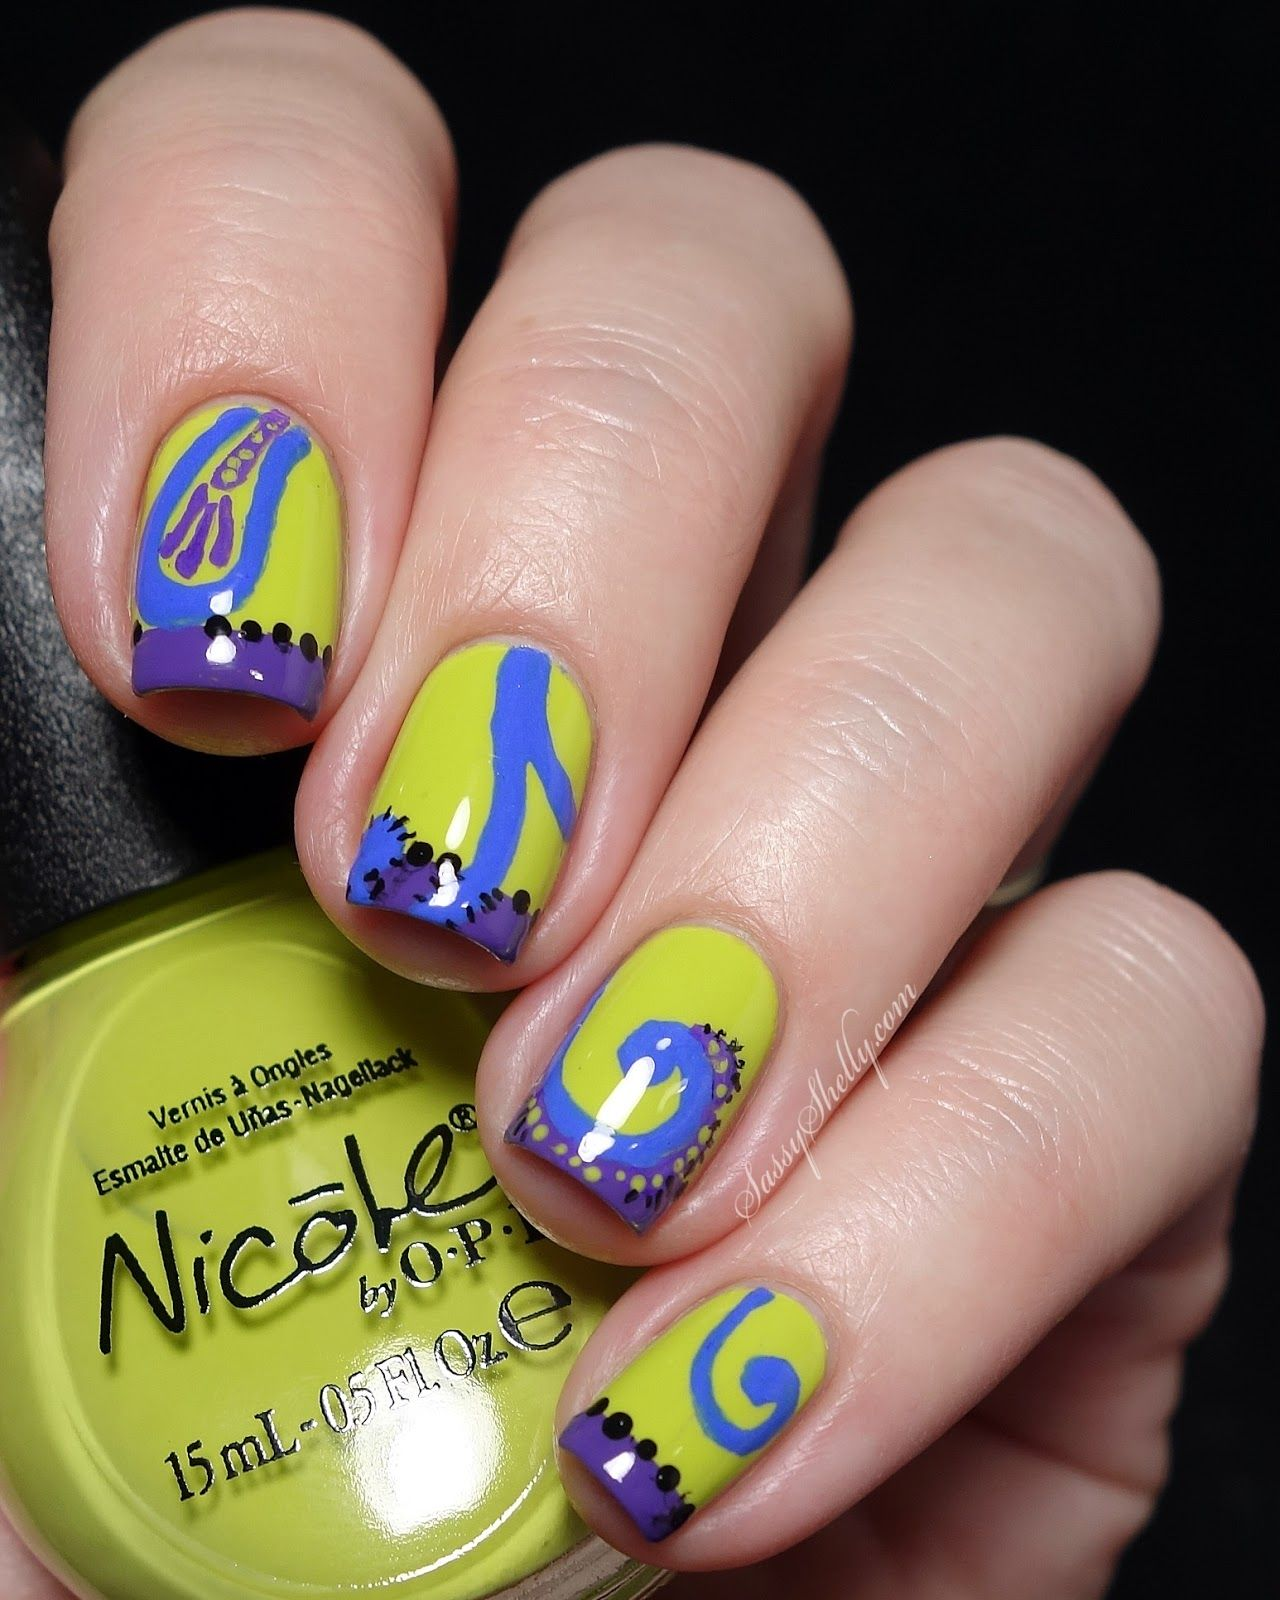 SaveTheUndies with U by Kotex - FREE Samples and inspired Nail Art | OPI